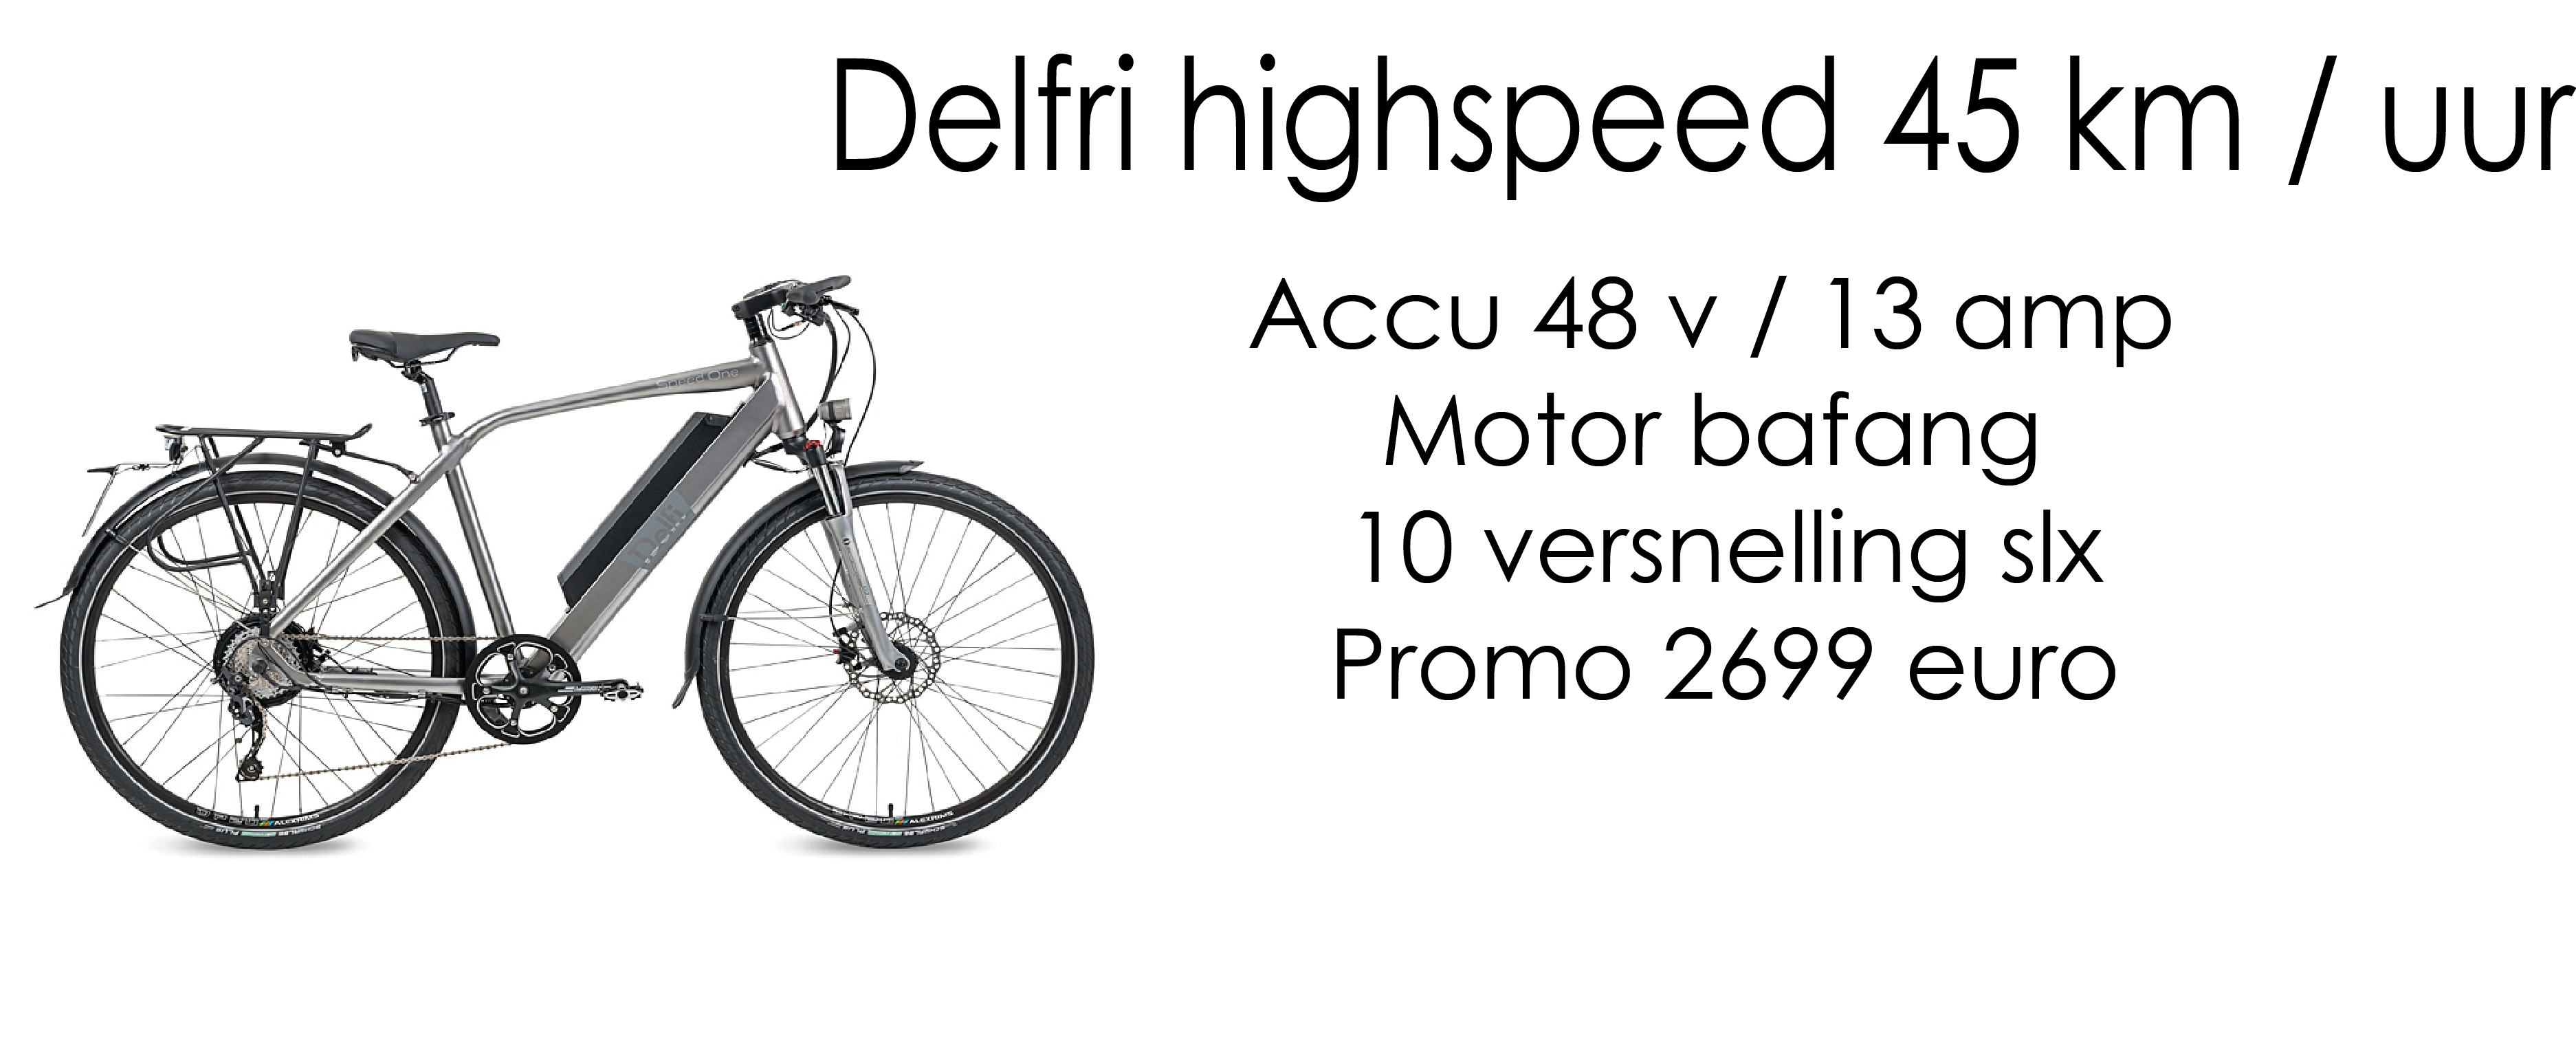 Delfti highspeed